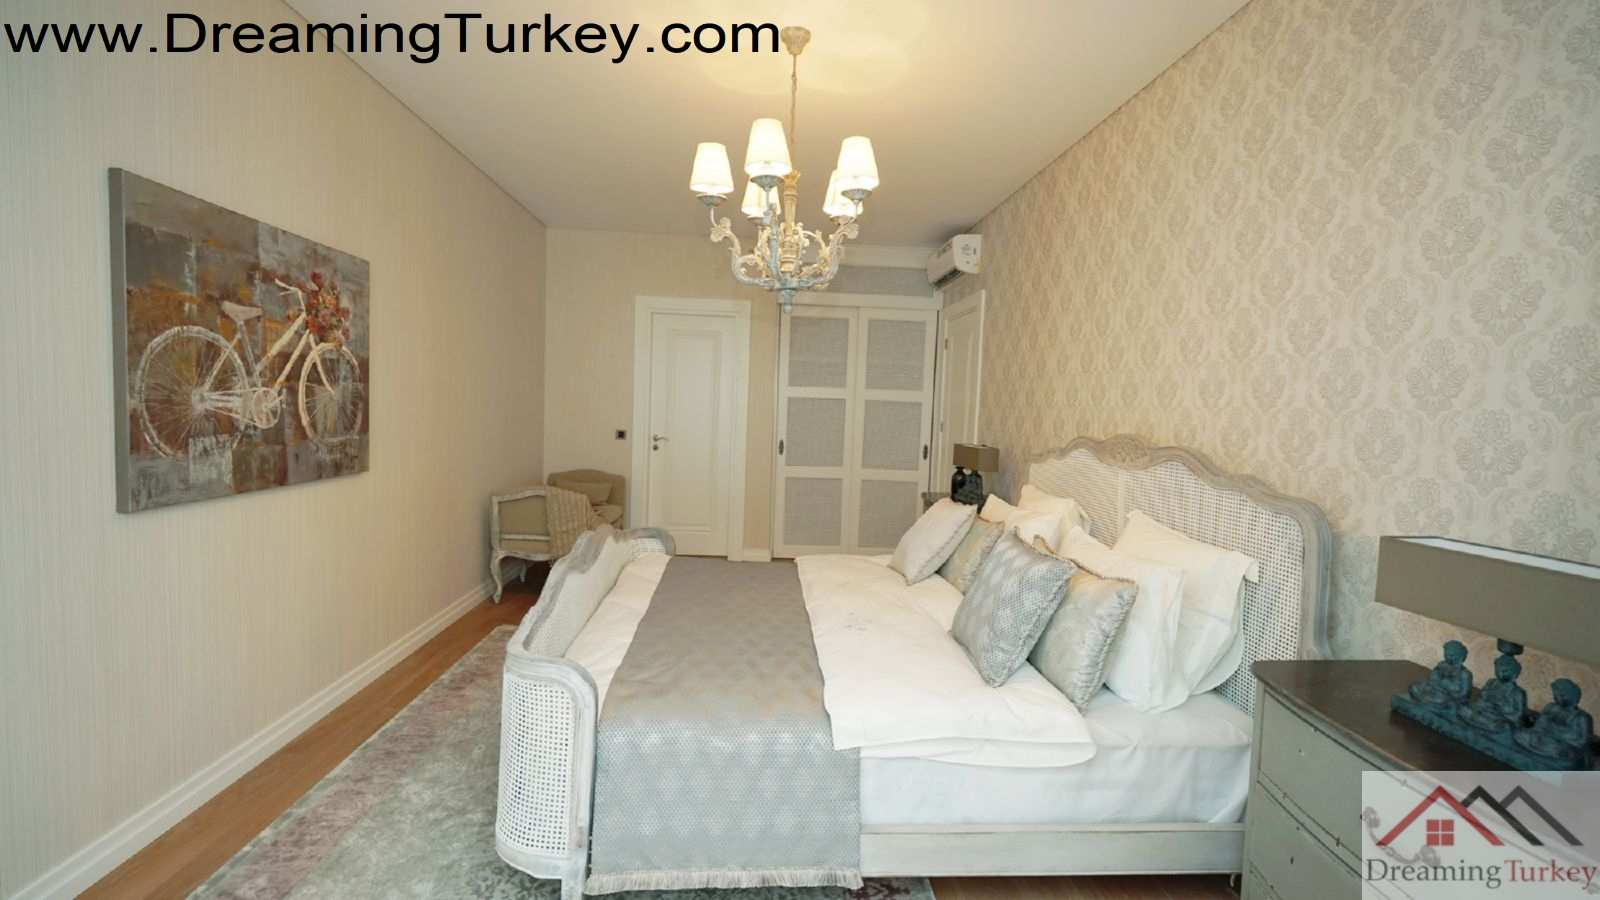 4-Bedroom Duplex with 2 Living Rooms Inside a Complex Next to the Metrobus